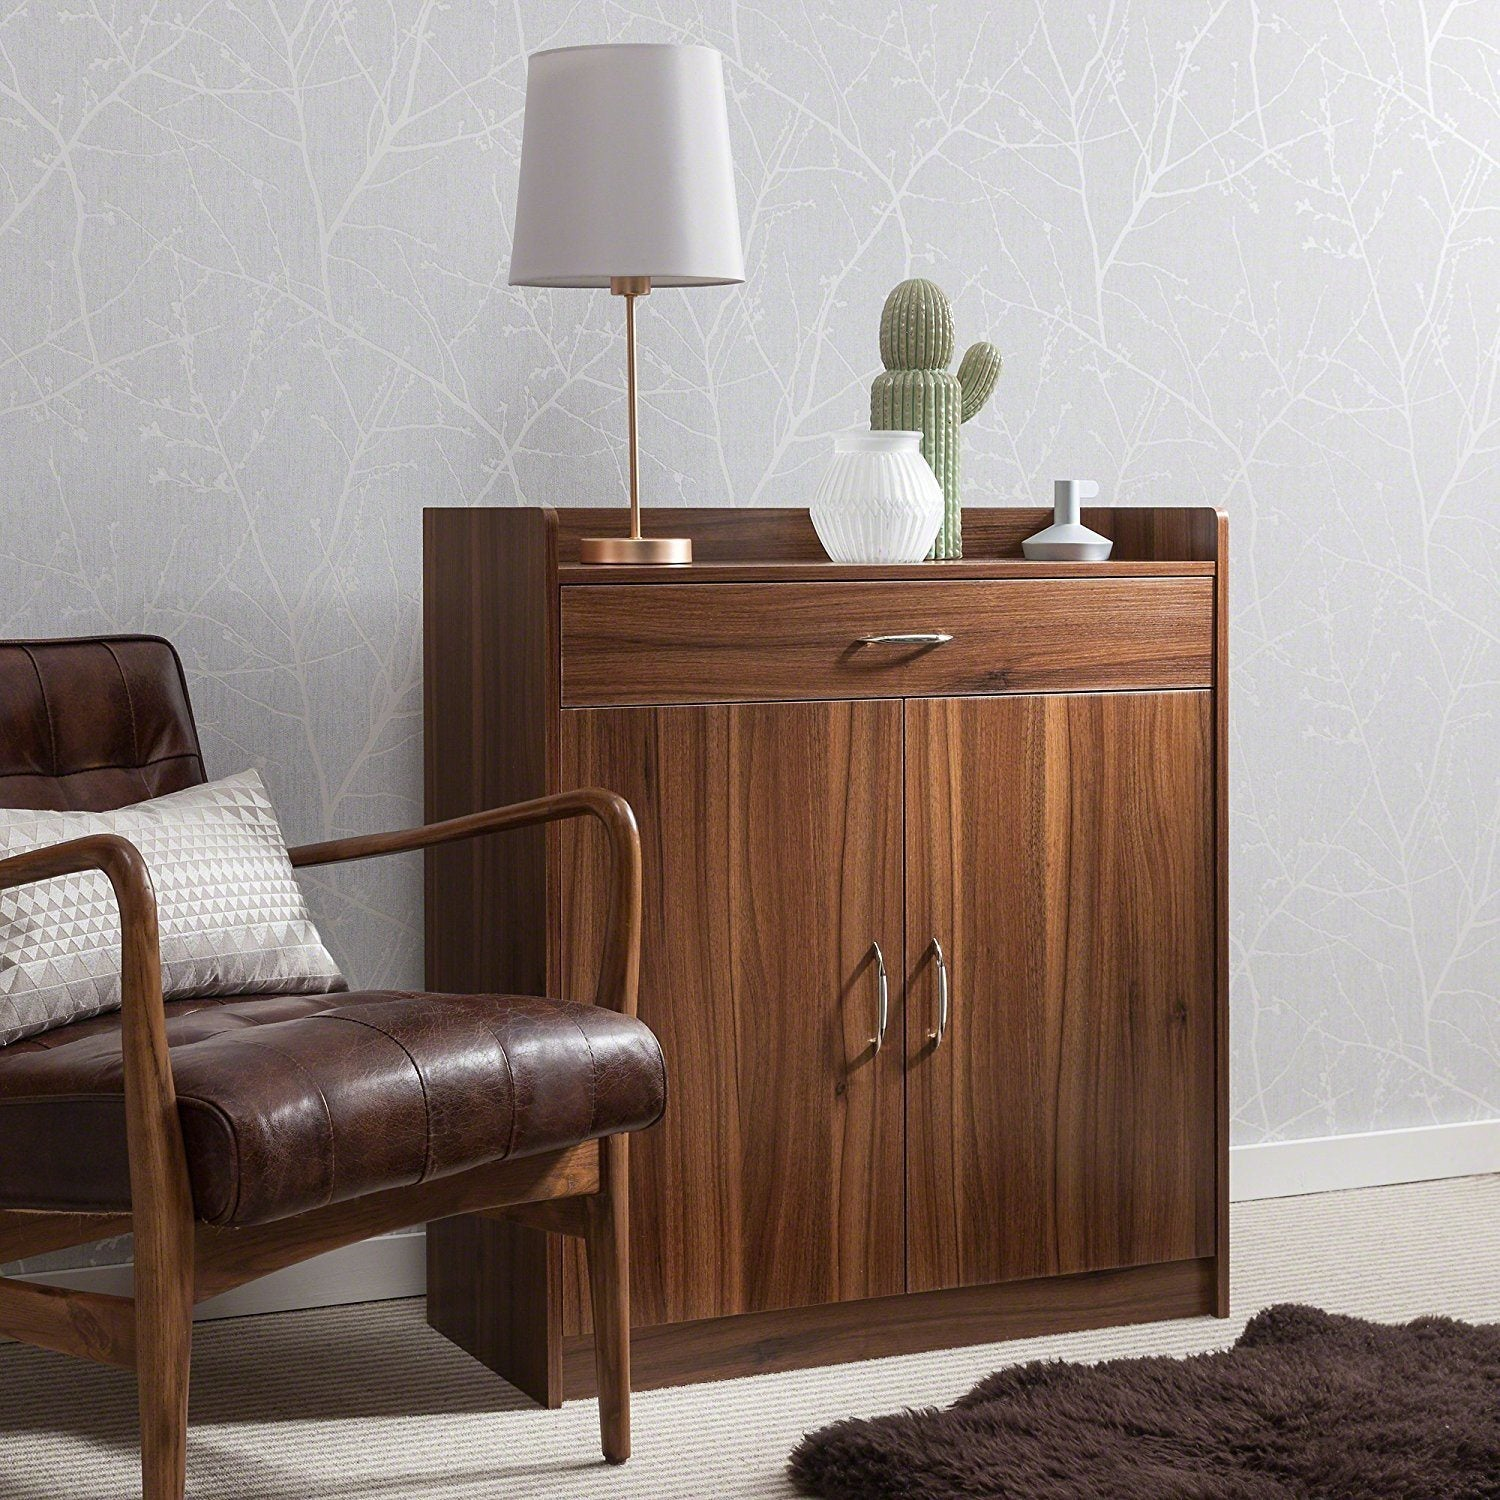 office sideboard. Sideboard \u2013 Home Office Cupboard Shoe Cabinet Unit Chest With Drawer And Shelves (Walnut